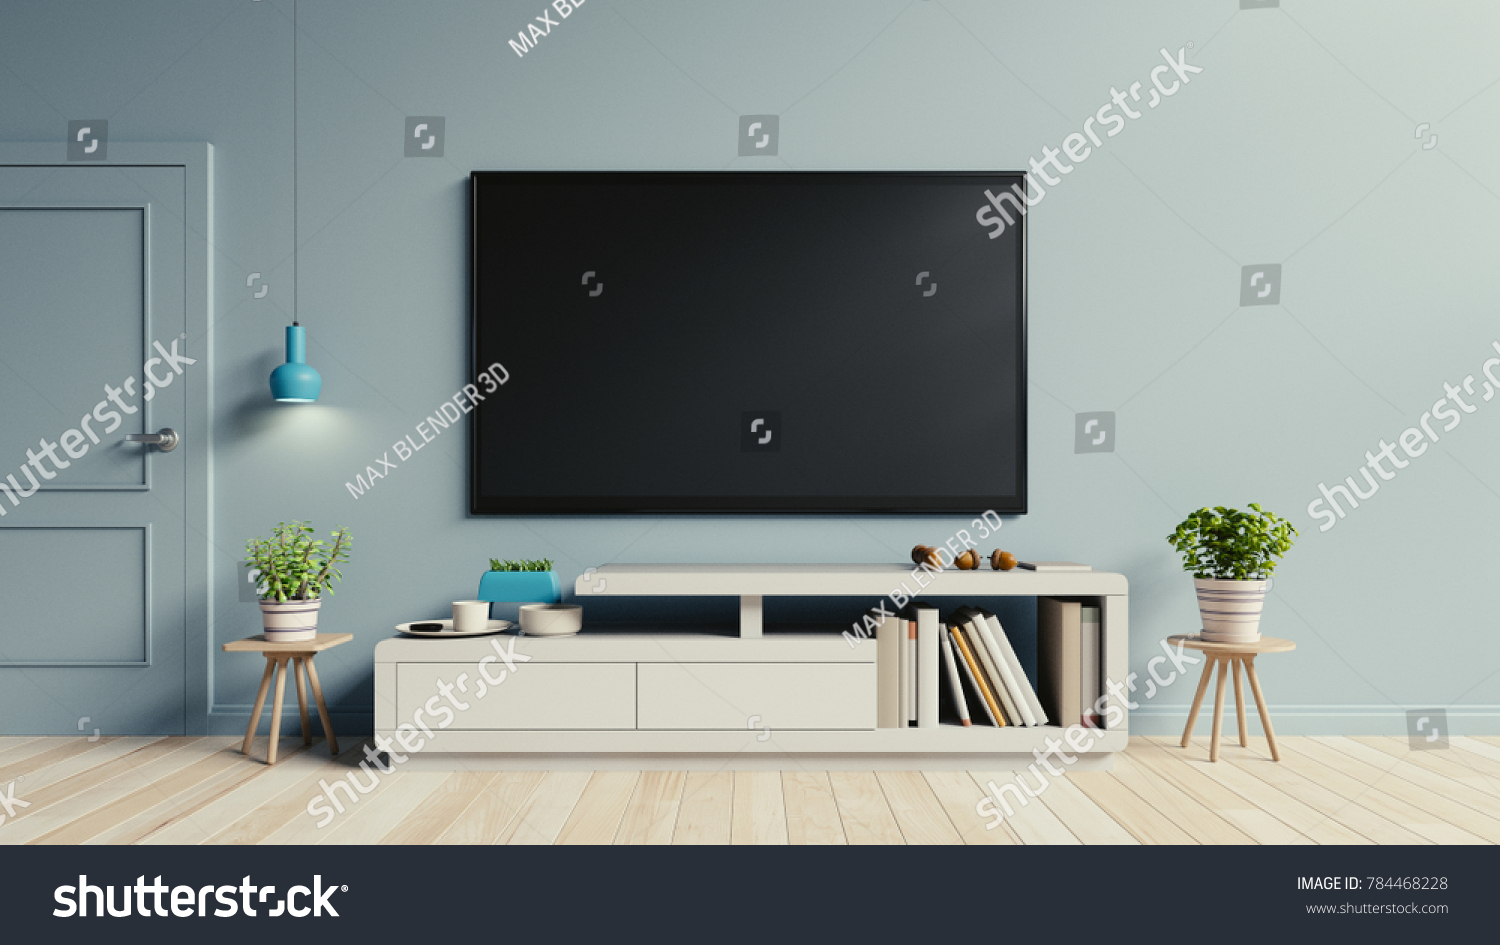 modern living room cabinets sectional sofa tv on cabinet stock illustration royalty free the in have plants and book blue wall background